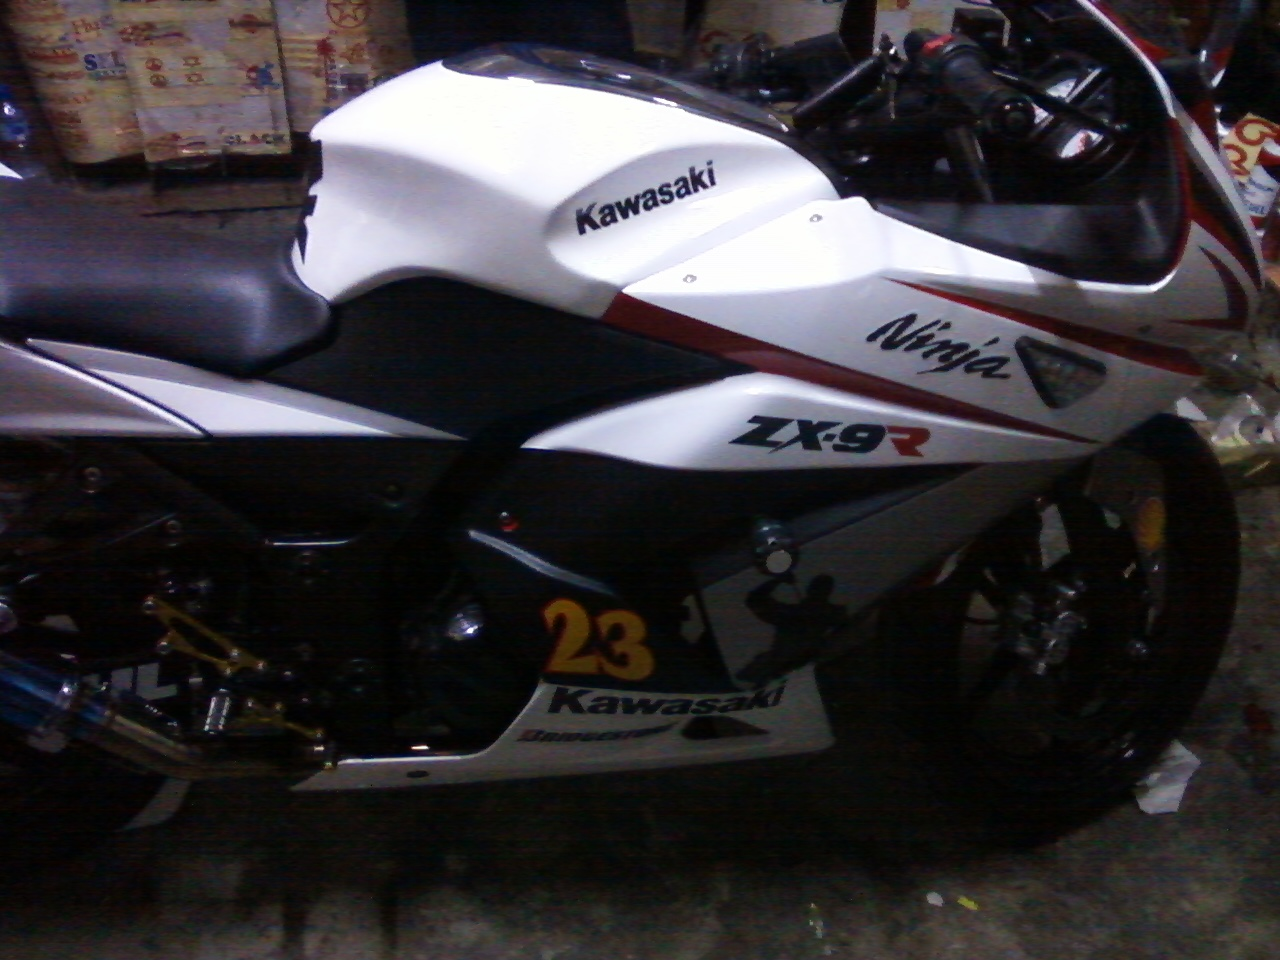 Ninja 250 Putih Cutting Sticker http://yosefcuttingsticker.blogspot.com/2011/07/cutting-sticker-ninja-250-merah-bro.html